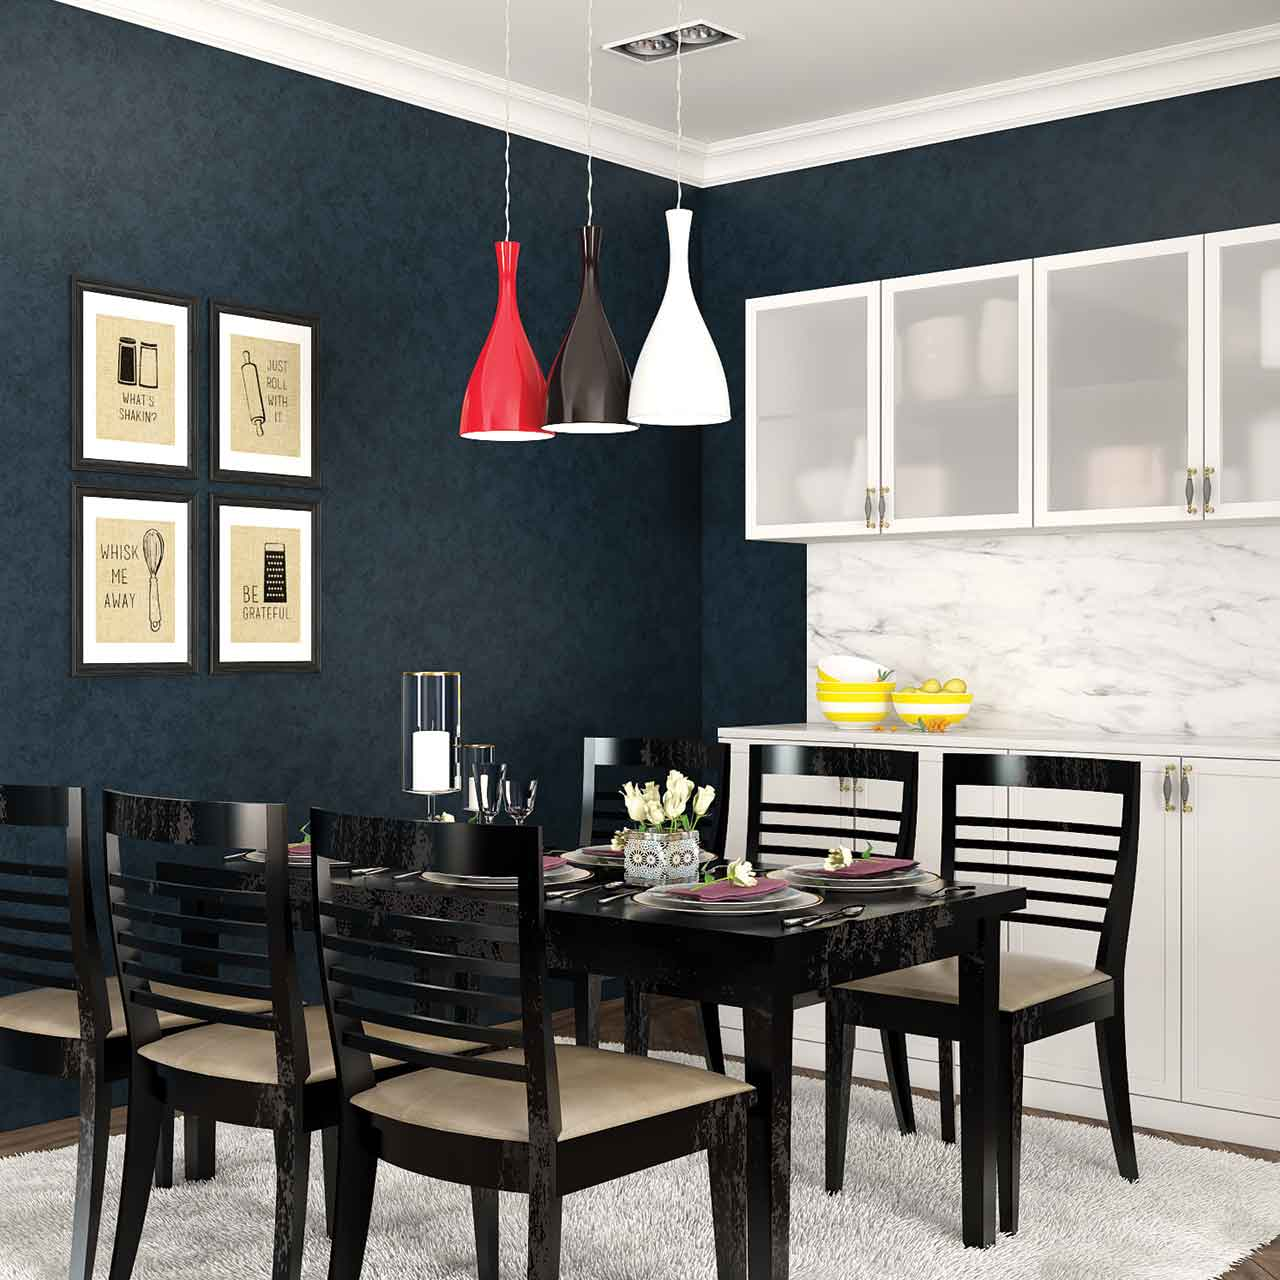 Dining room sets for your home if you want to create an exquisite and sophisticated style with small dining room design